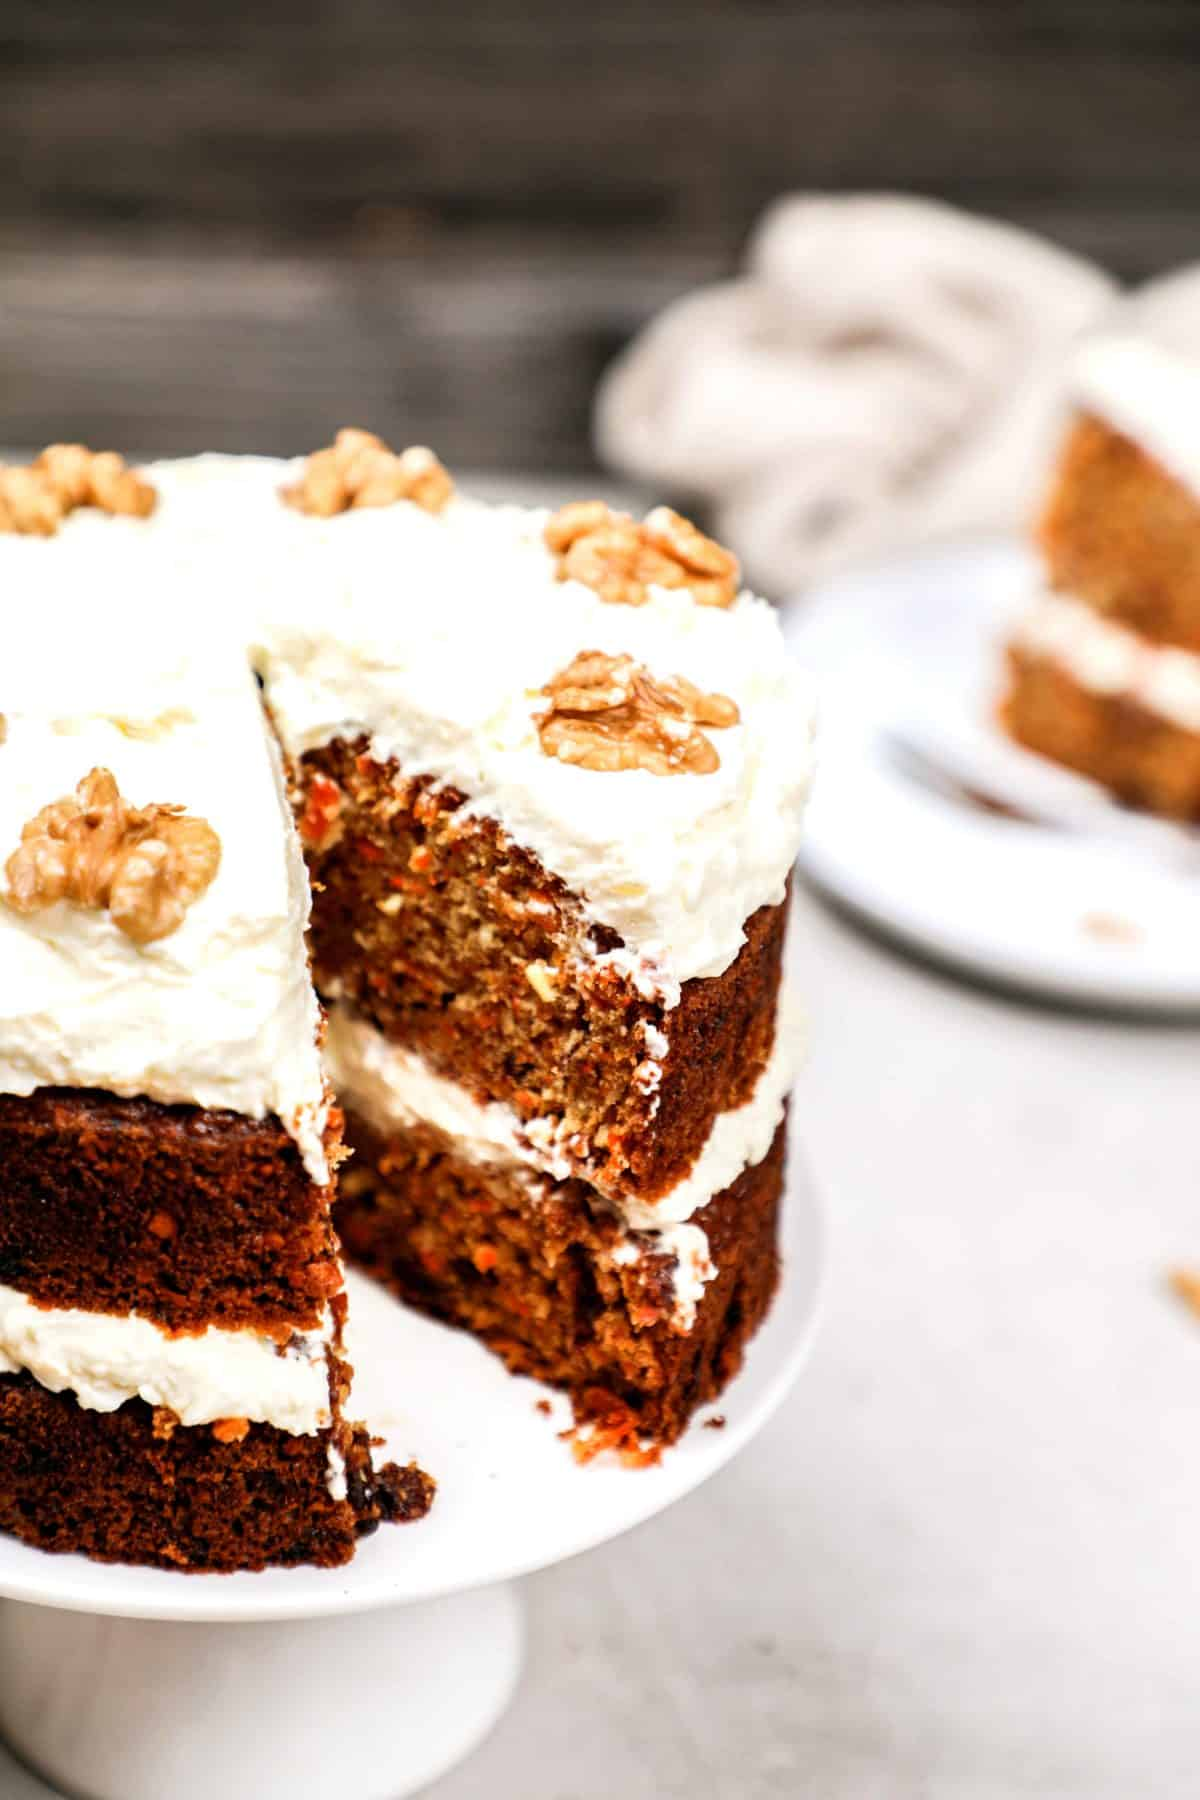 A carrot cake with a slice cut out showing the inside.